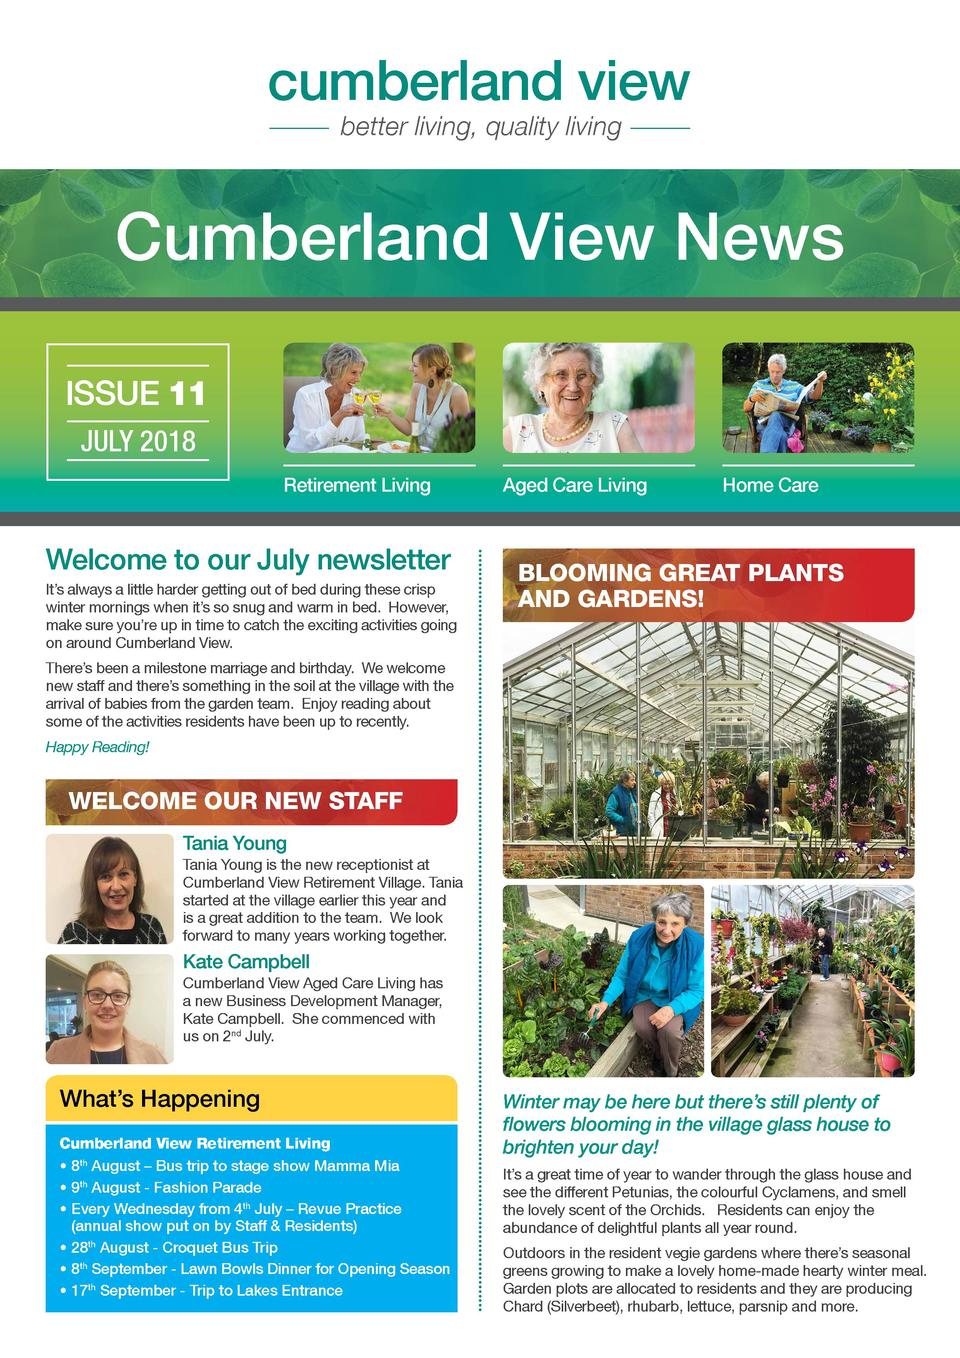 cumberland view better living, quality living  Cumberland View News ISSUE 11 JULY 2018 Retirement Living  Welcome to our J...